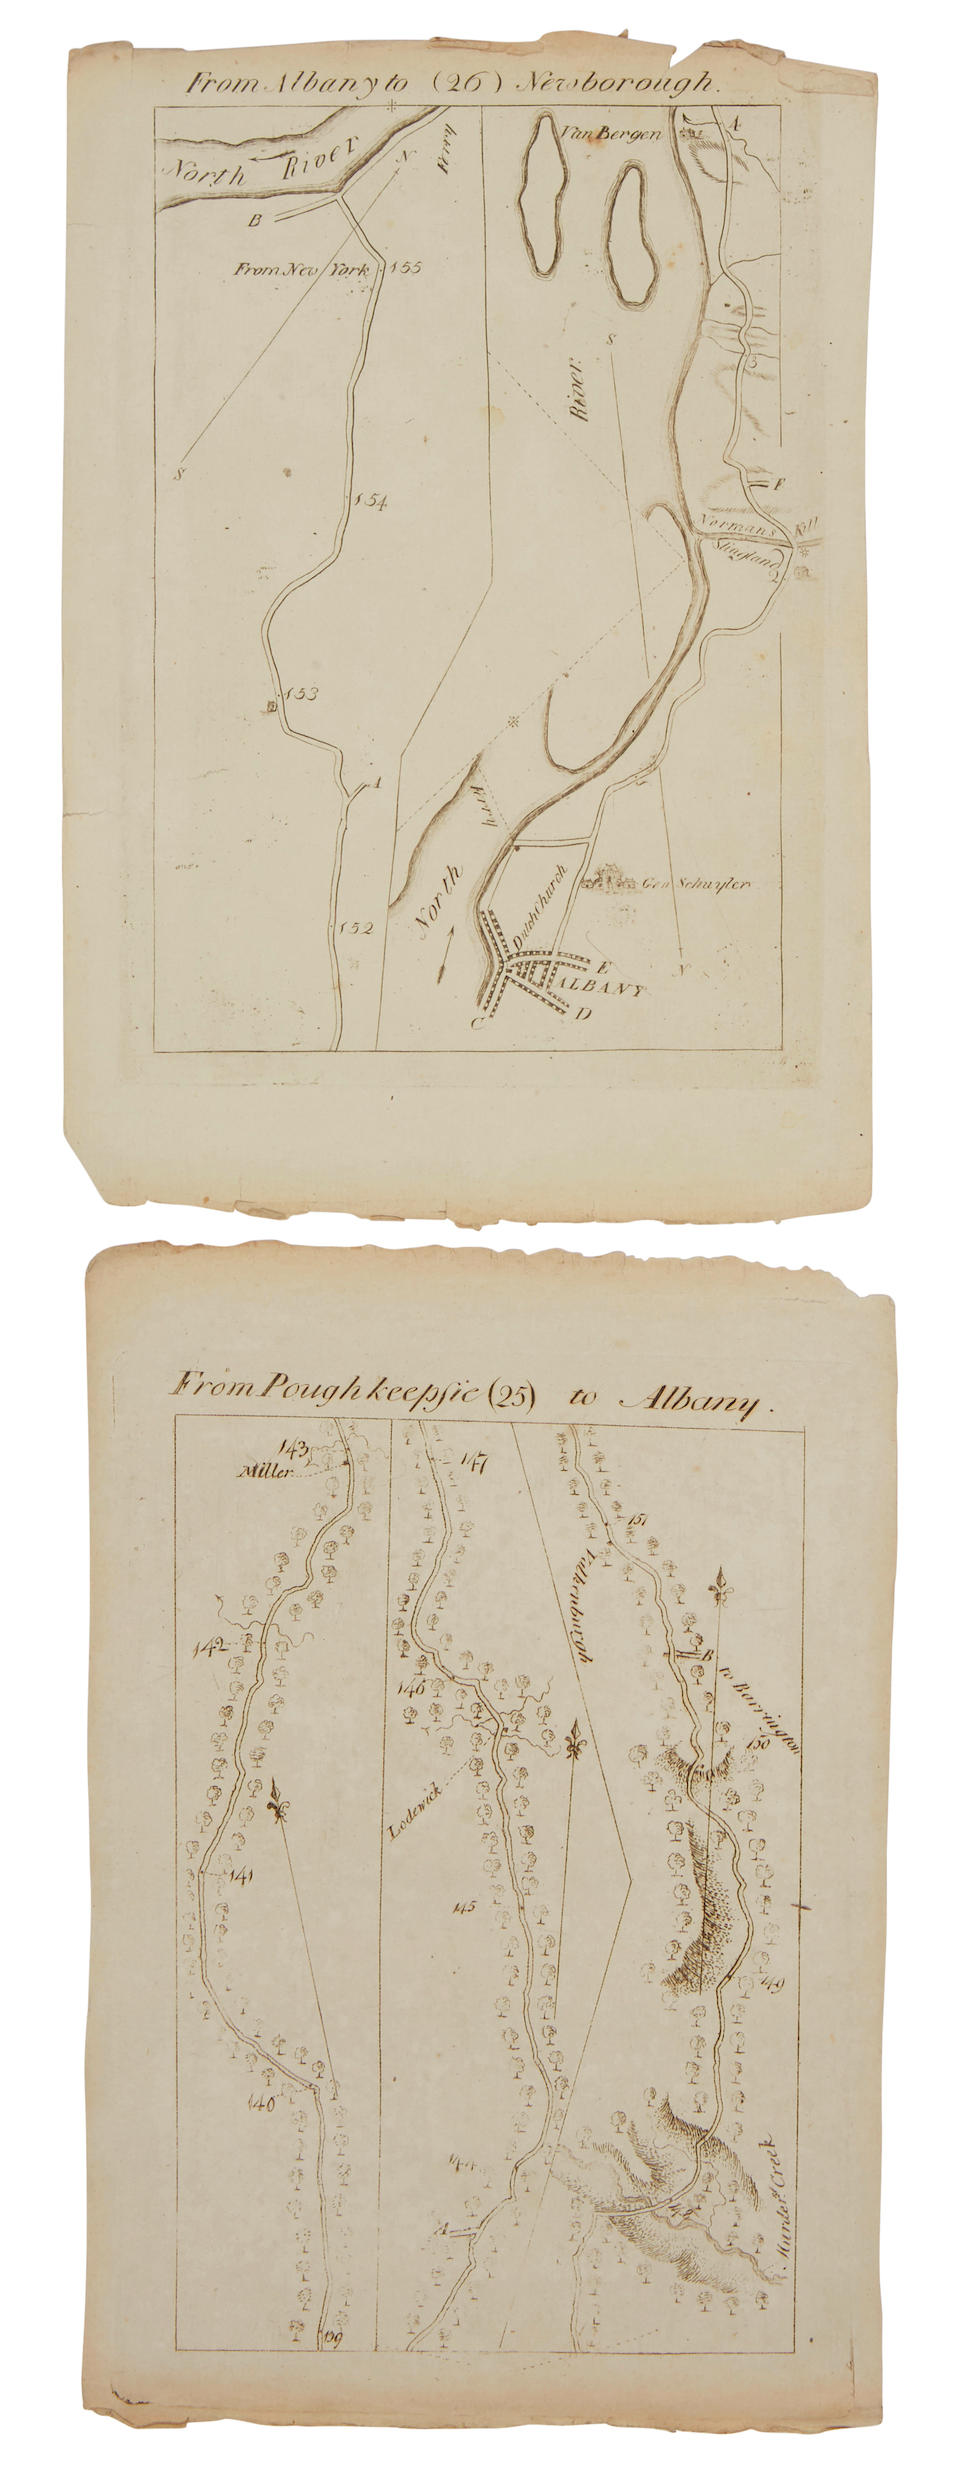 Colles, Christopher. 1739-1816. A Survey of the Roads [of the United States of America]. [New York: 1789].